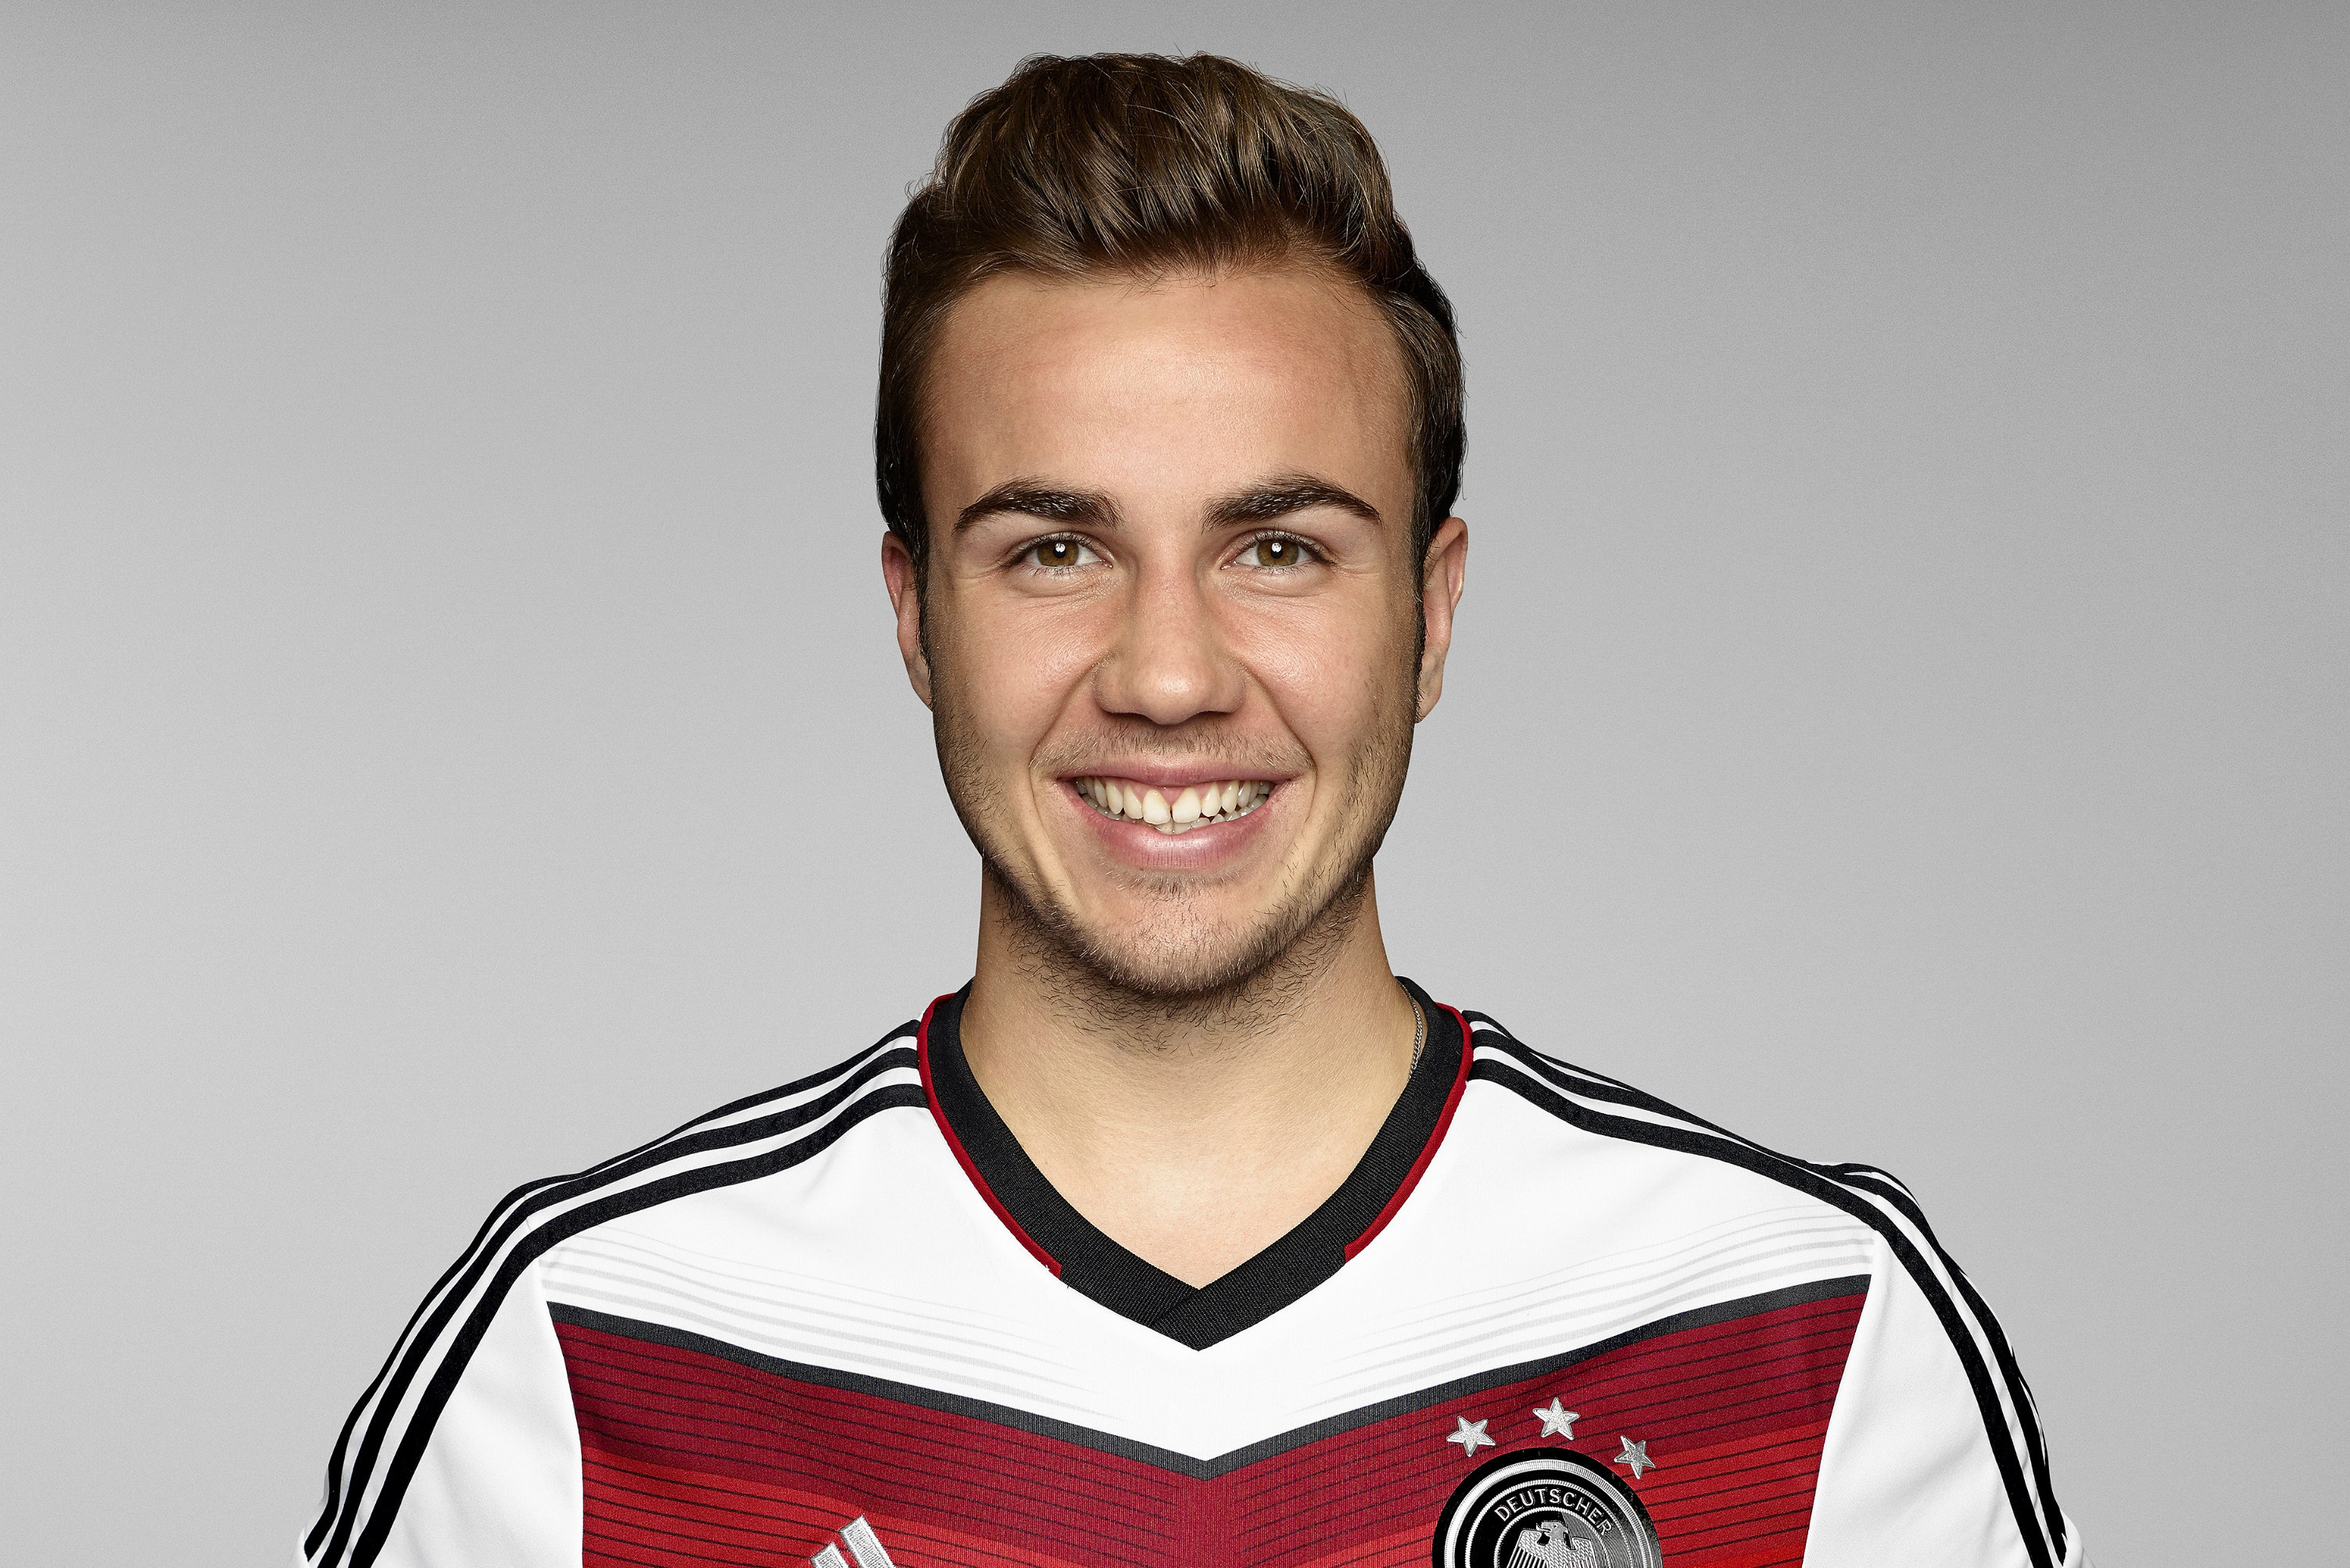 mario gotze hairstyle: how to style your hair like germany world